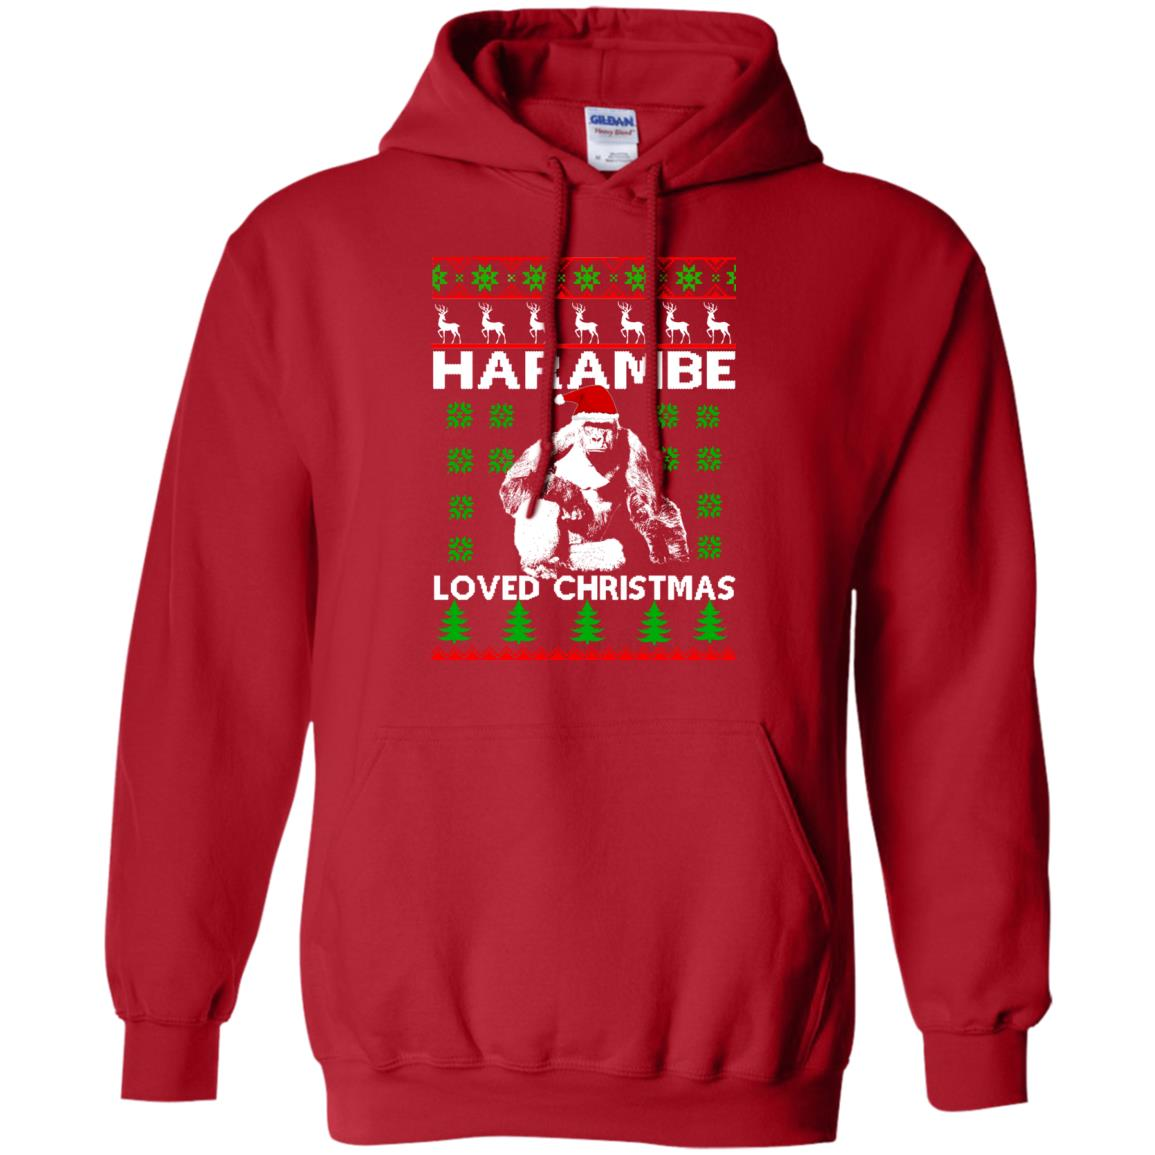 image 813 - Harambe Loved Christmas Sweater, Shirt, Hoodie